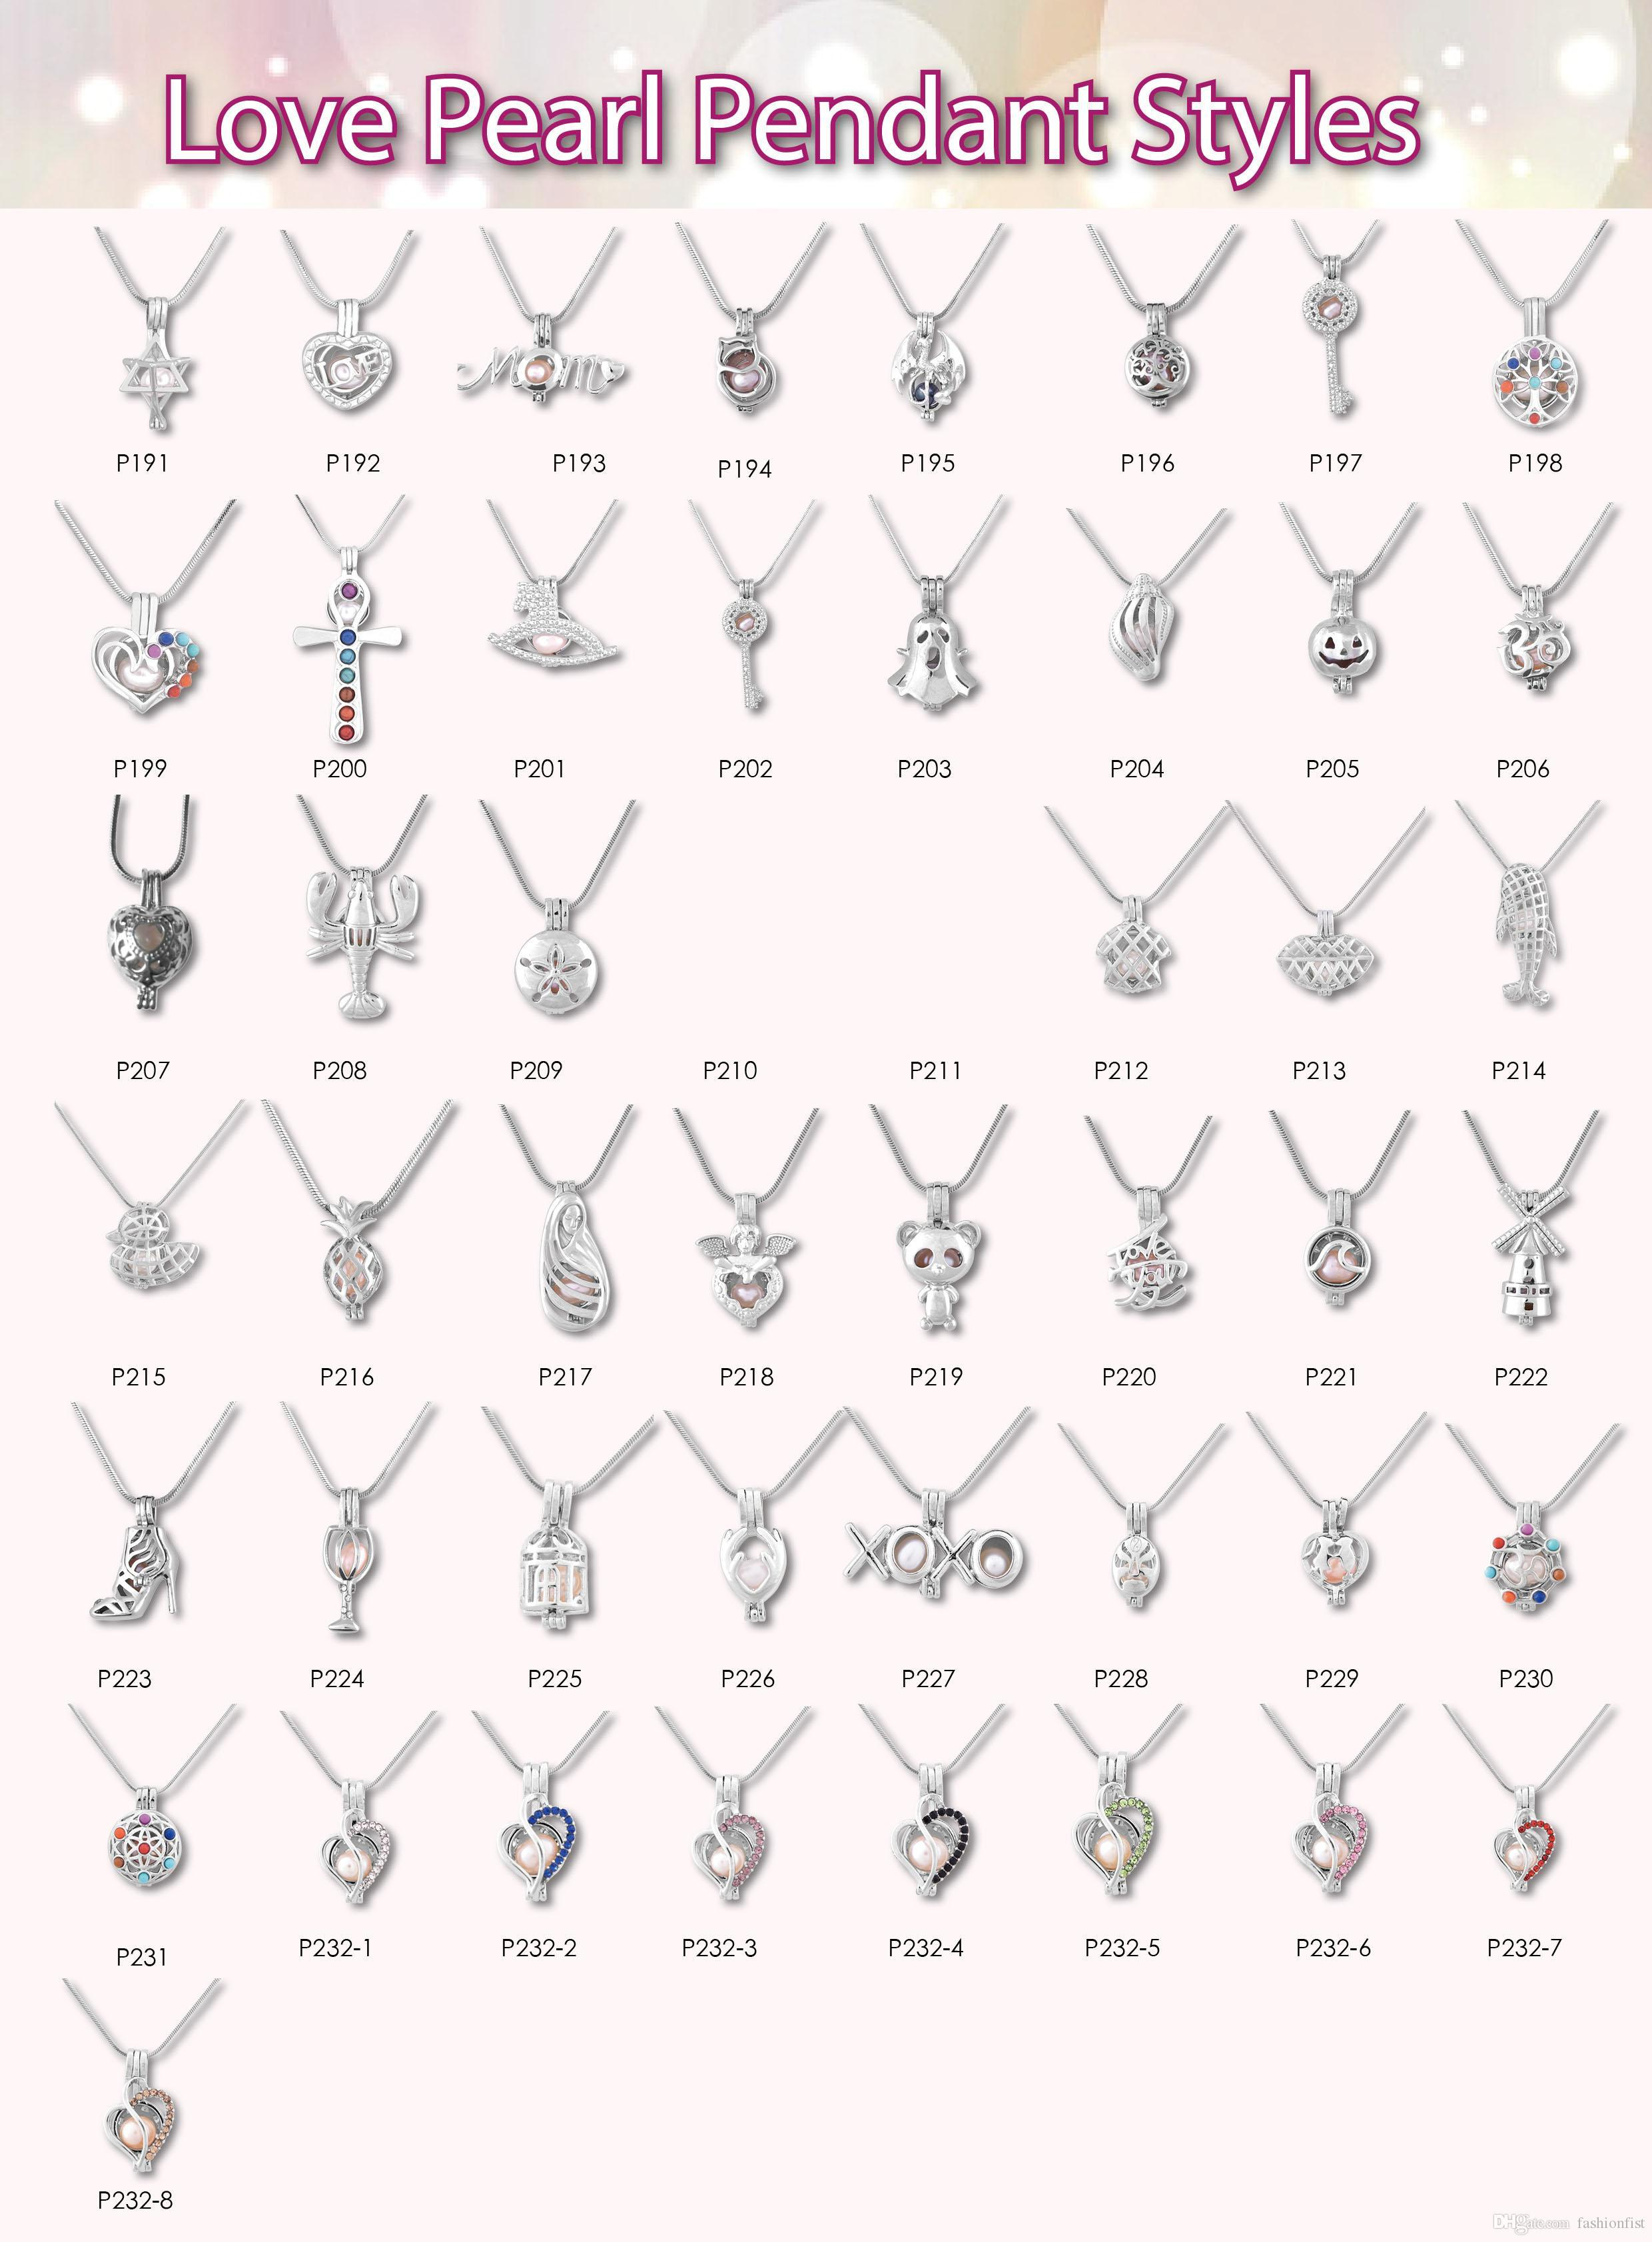 Mix 355 Style cage IN STOCK 18kgp love pearl cage Wholesale pendant locket cages Pendants, DIY Pearl Necklace charm pendants mountings